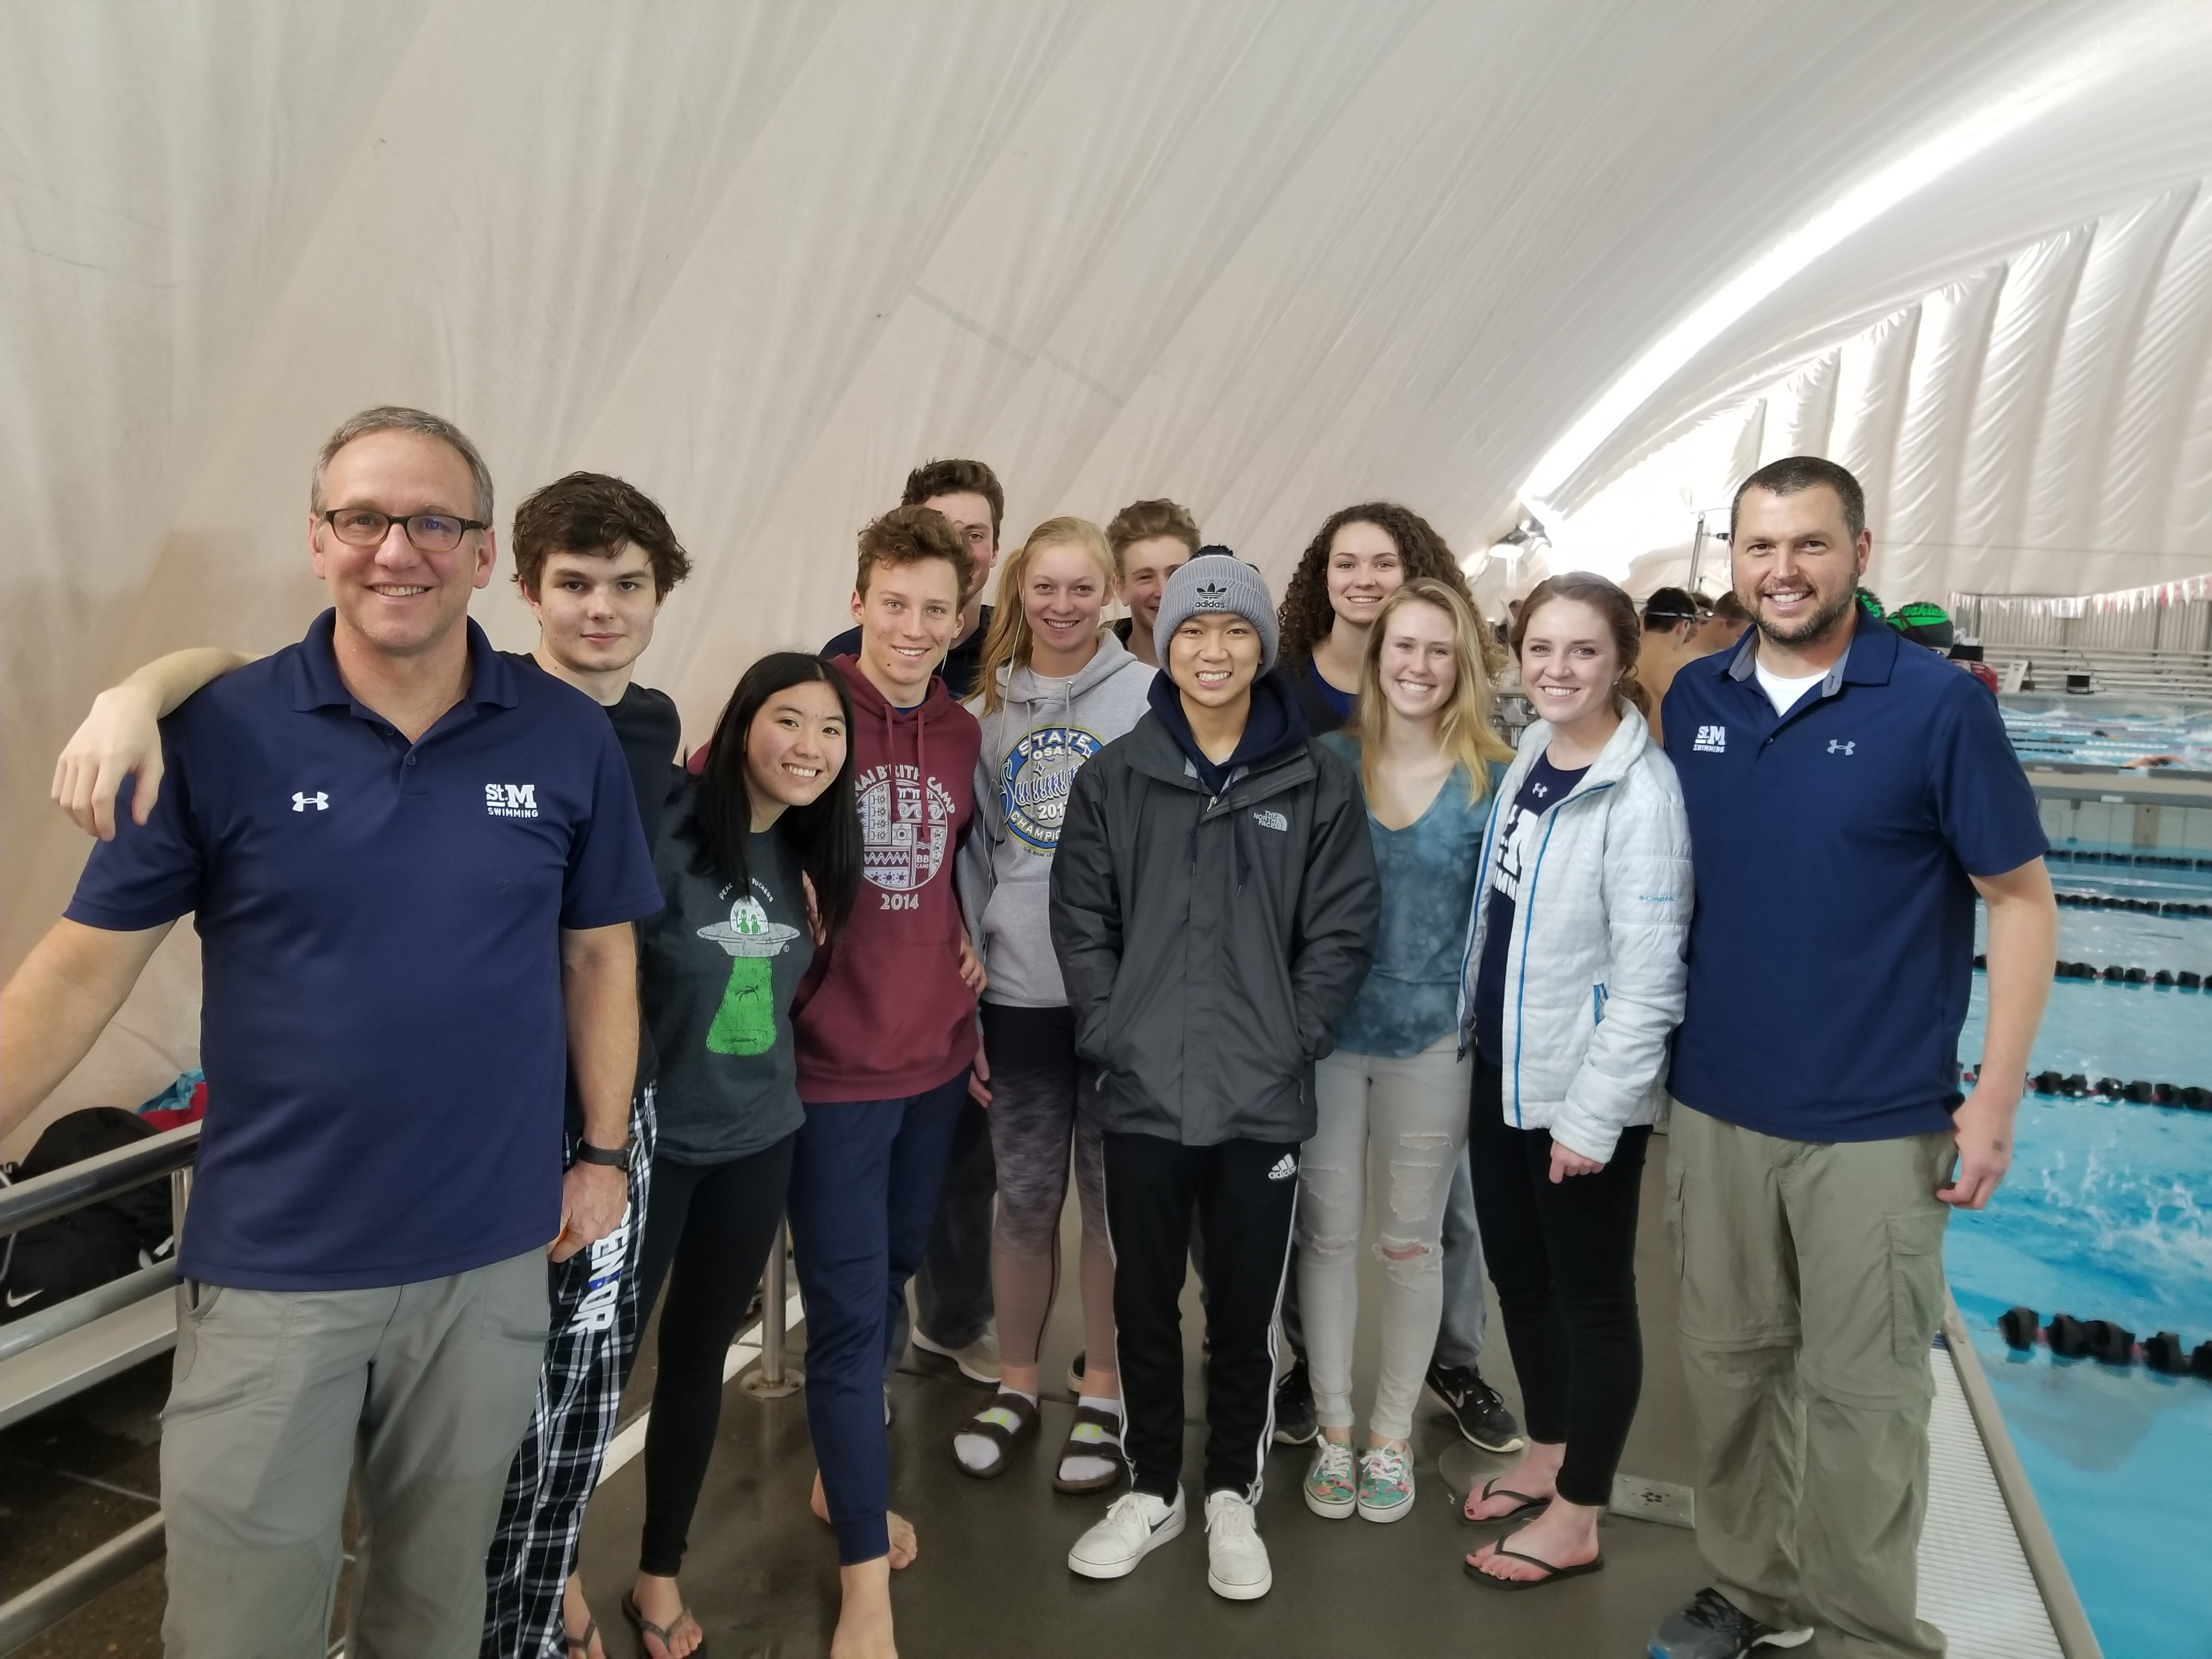 Coed Varsity Swimming finishes 10th place at State Swim Meet